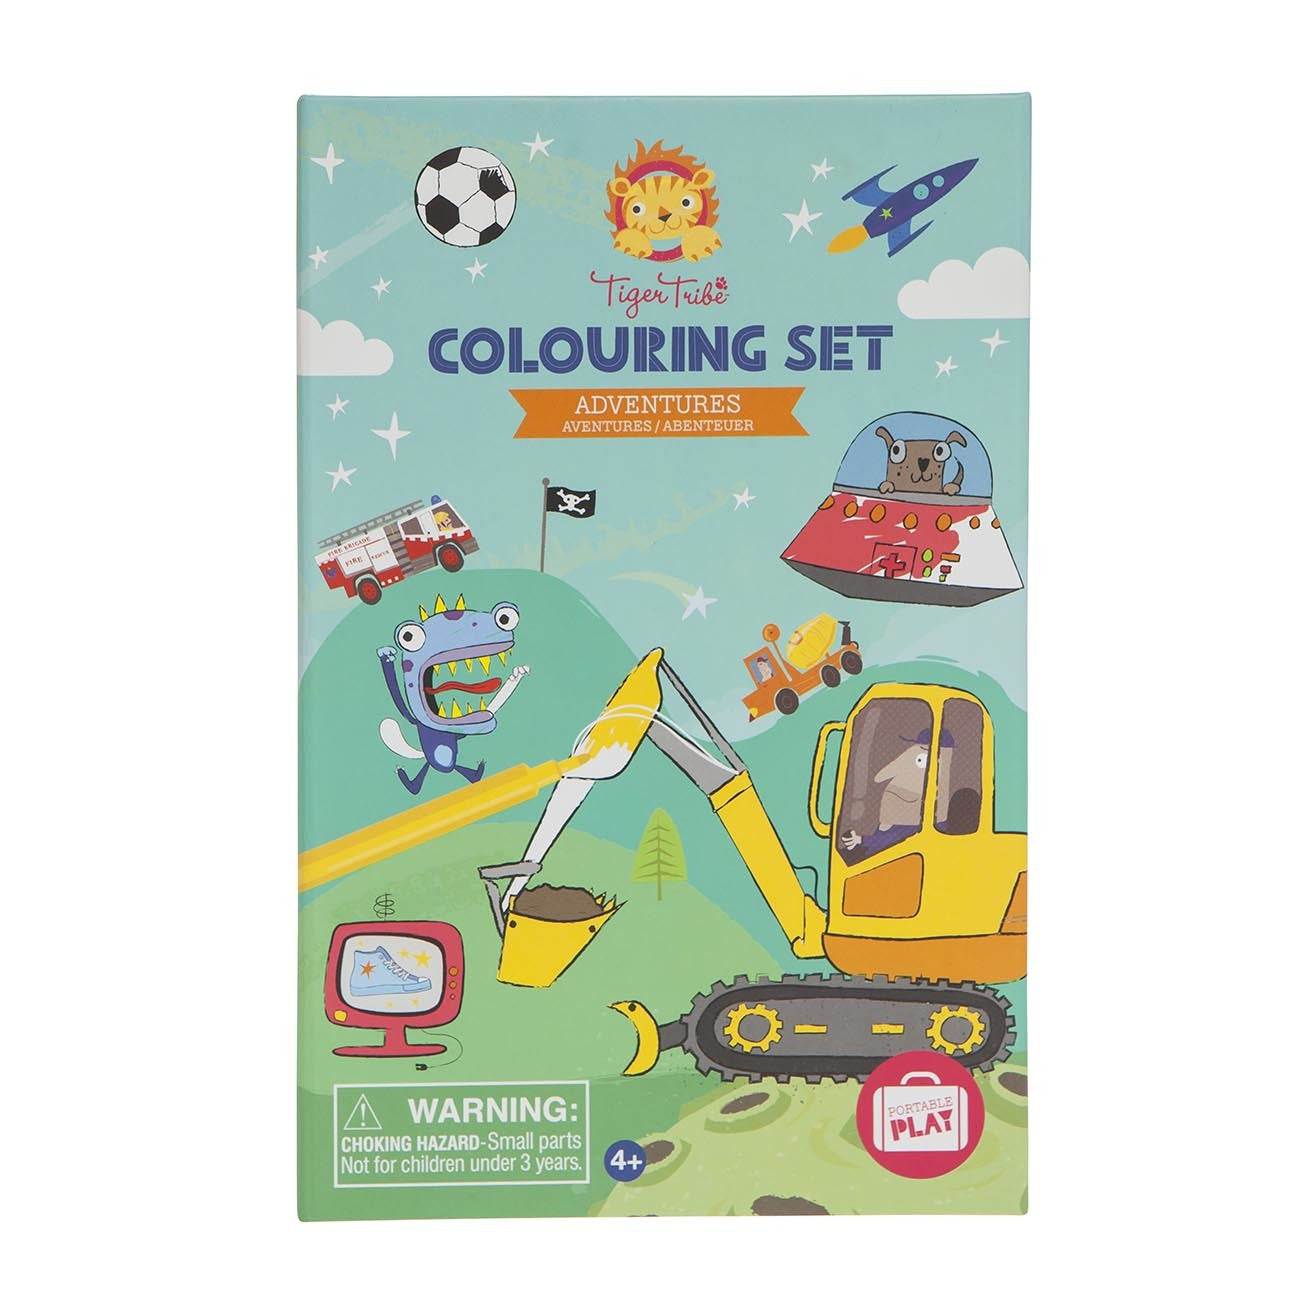 Adventures Colouring Sets